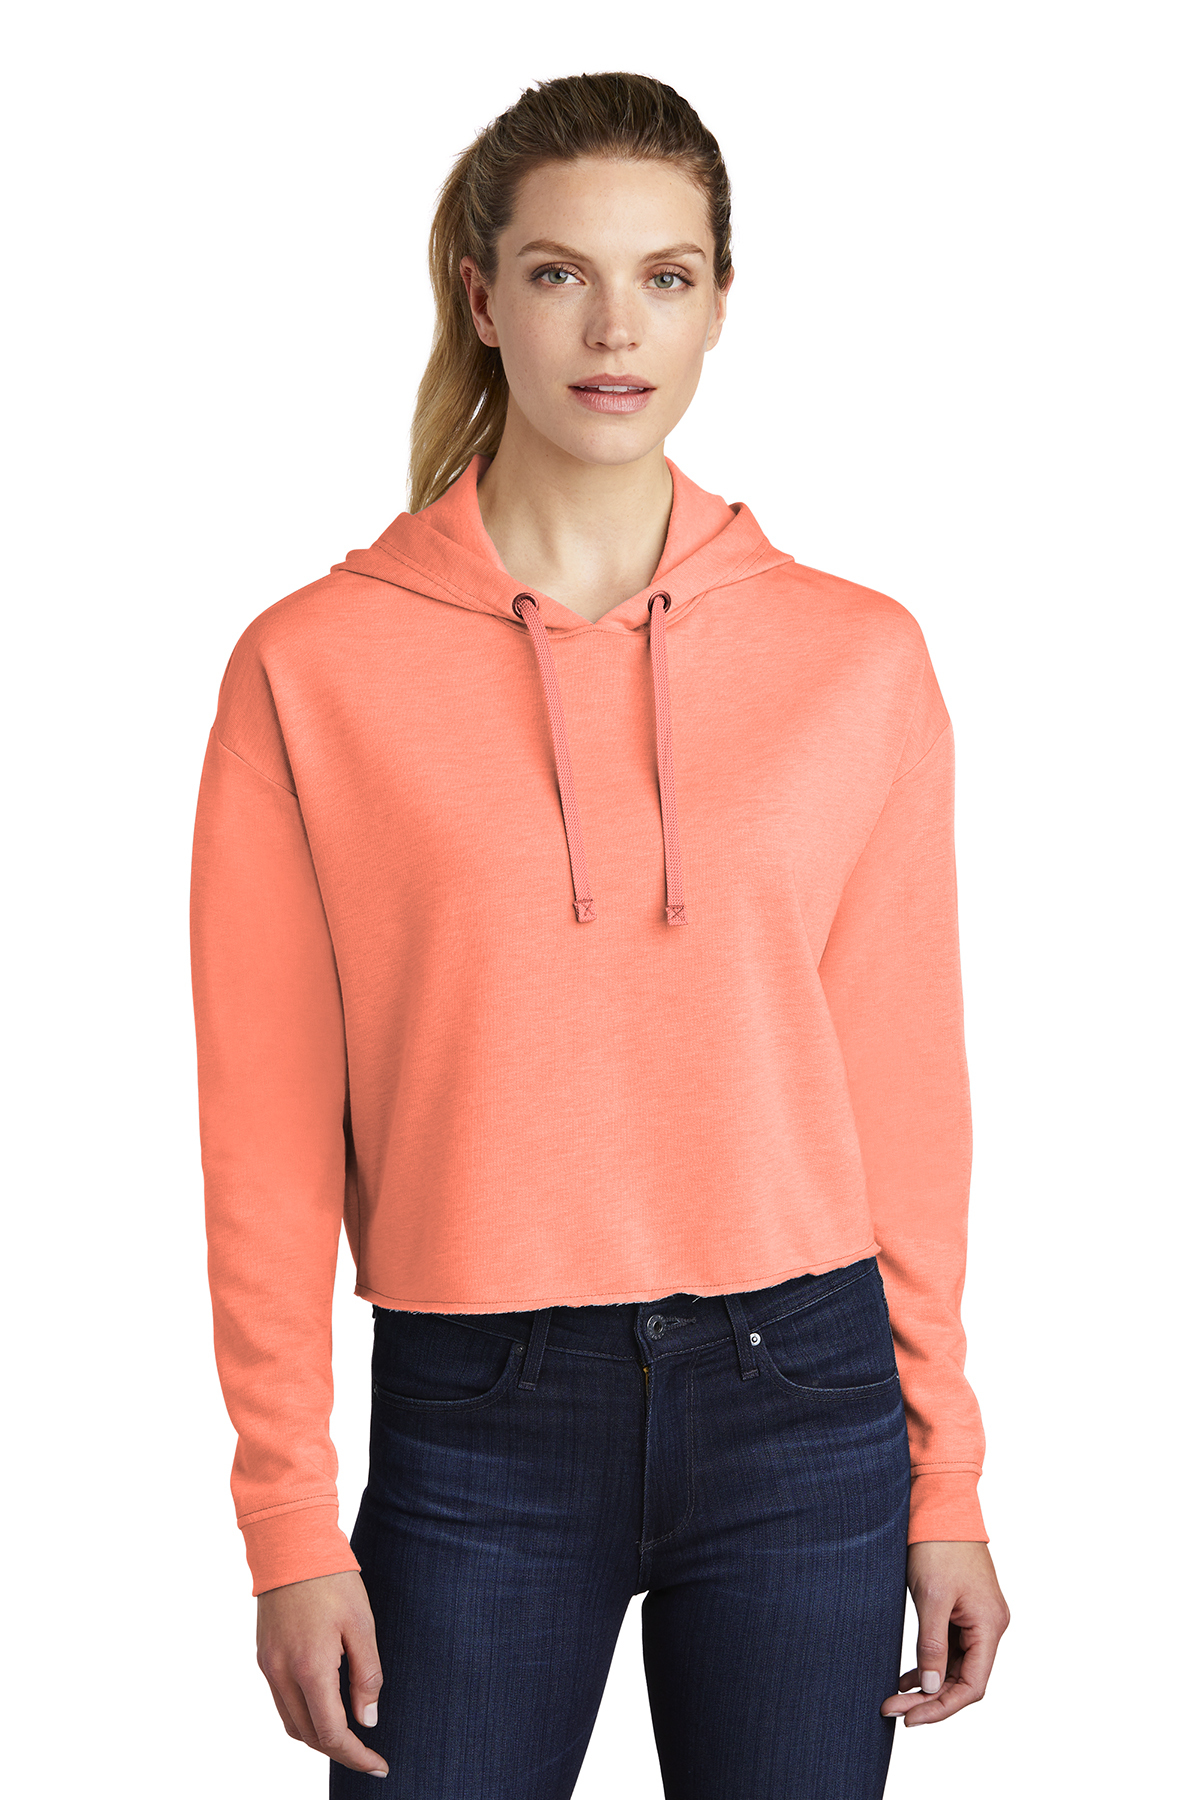 click to view Soft Coral Heather